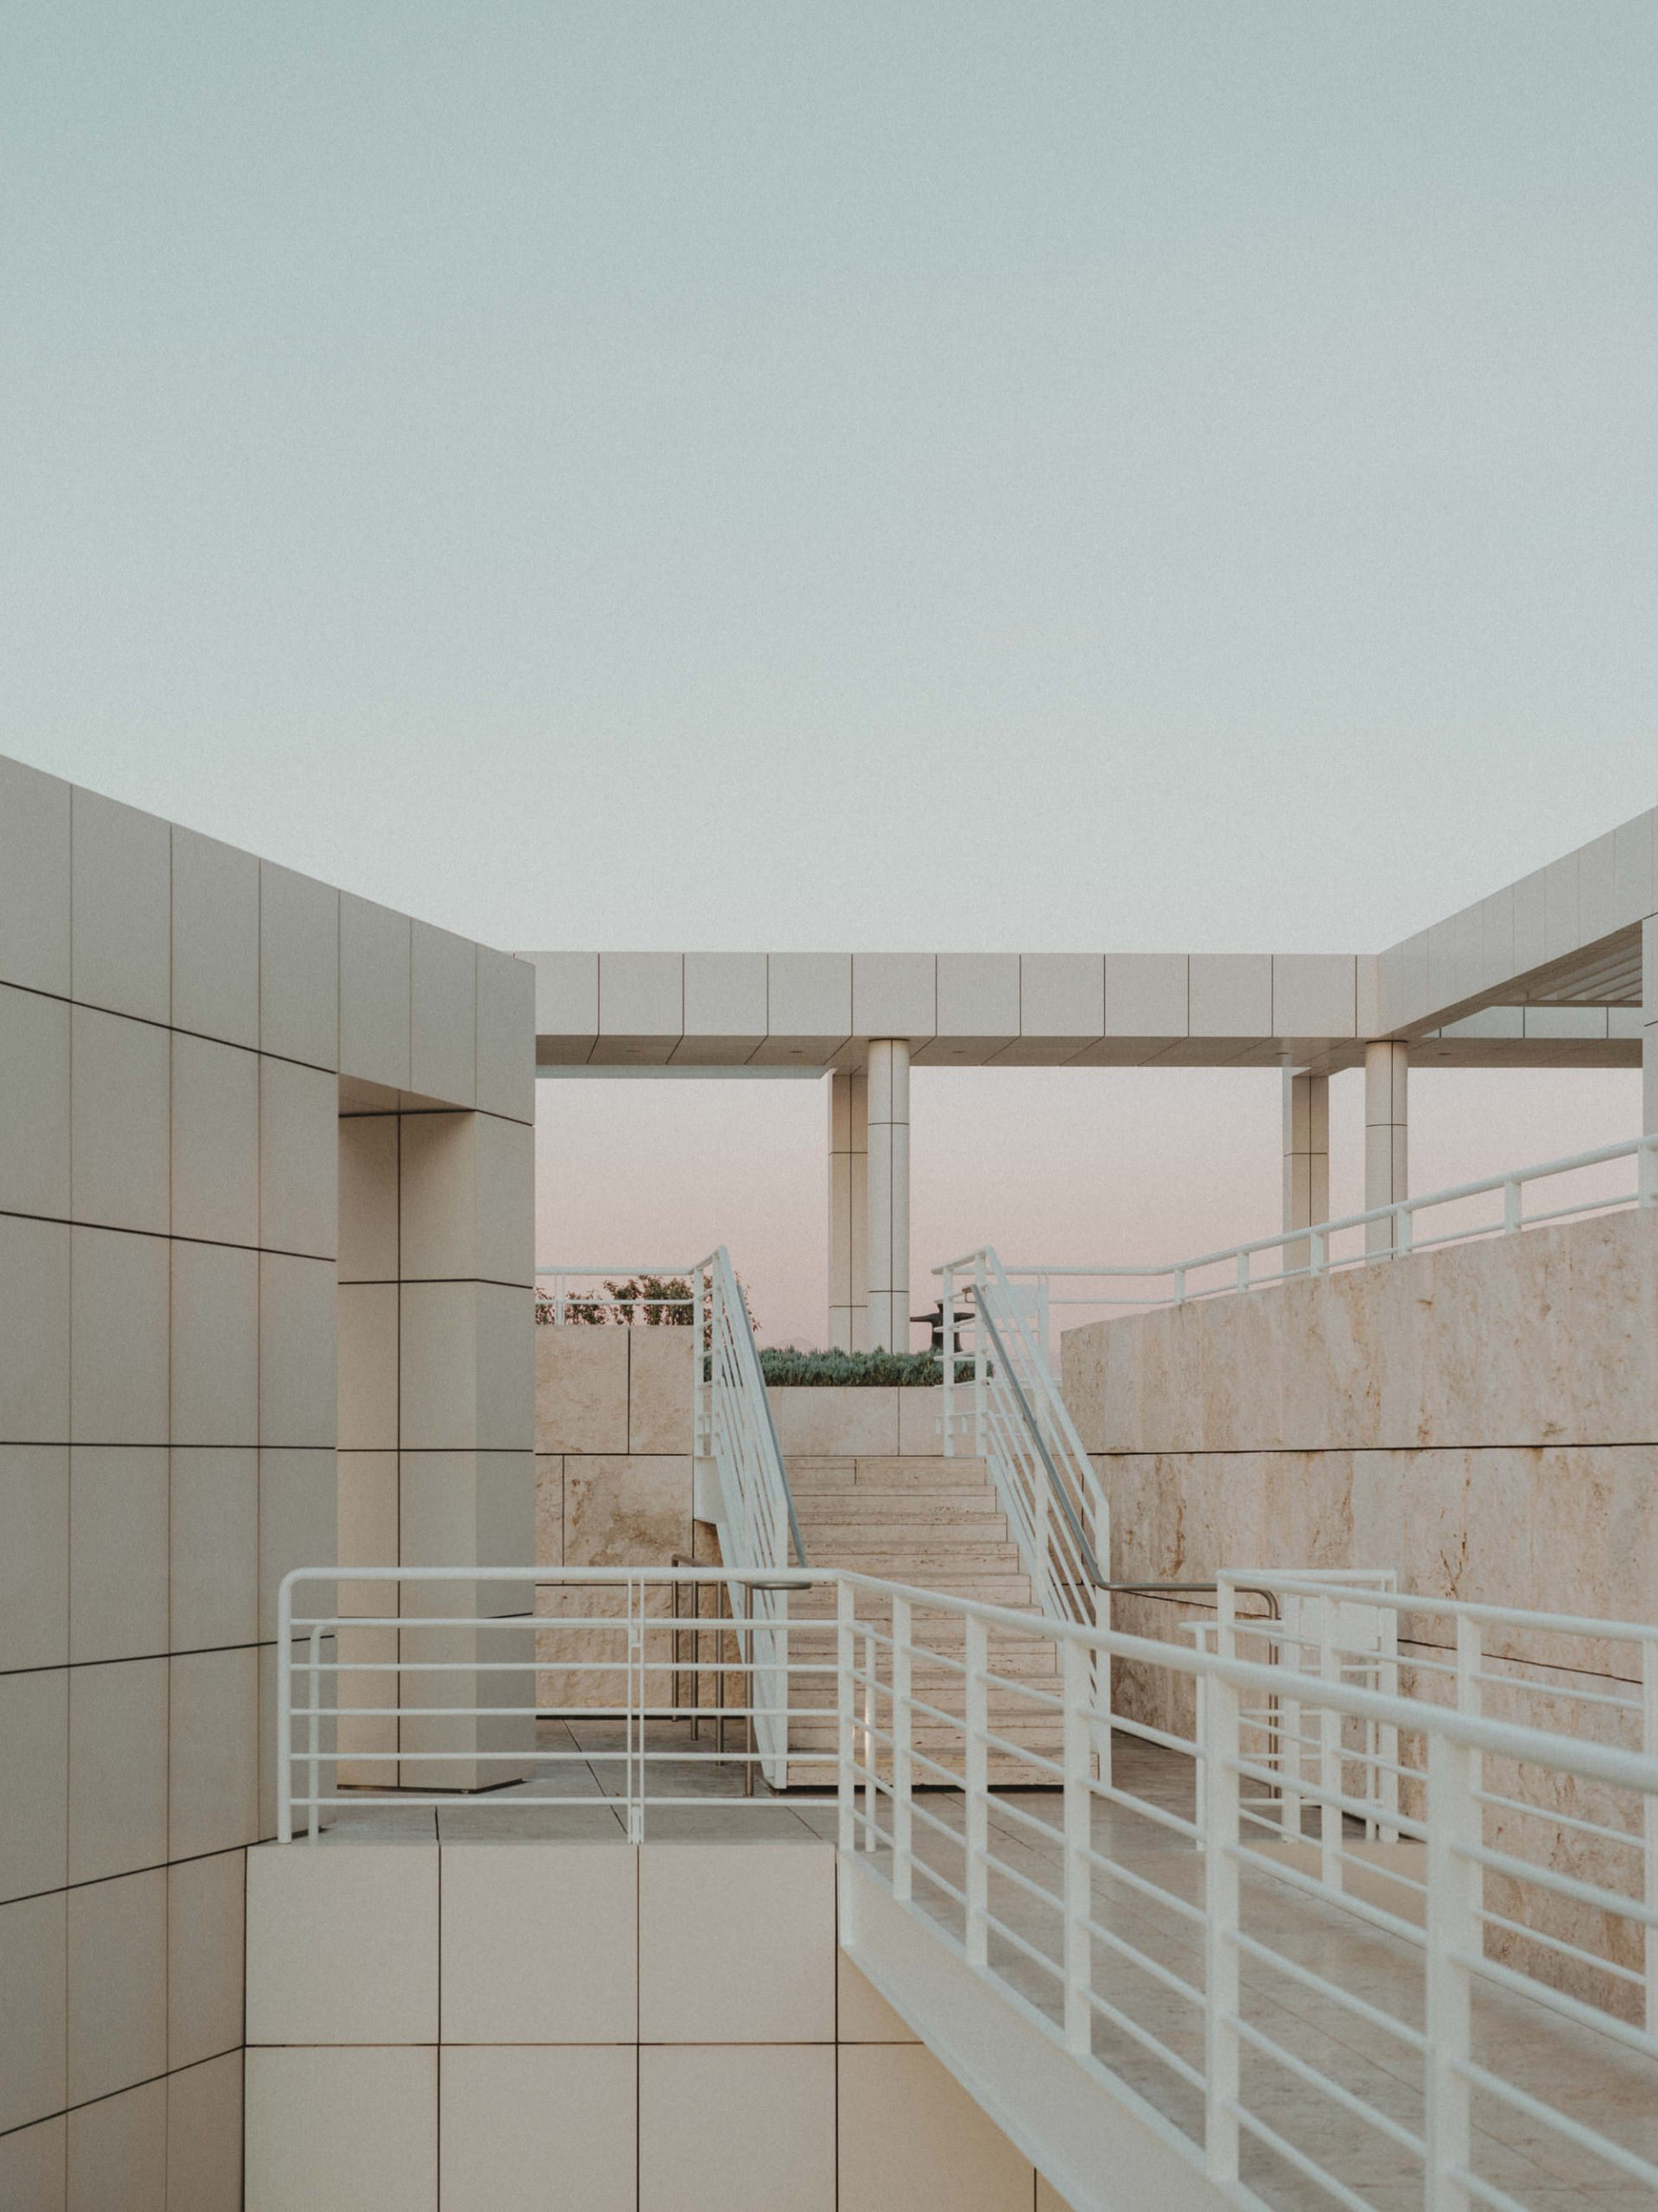 Sunset at Getty Museum Los Angeles - photographed by Julius Hirtzberger